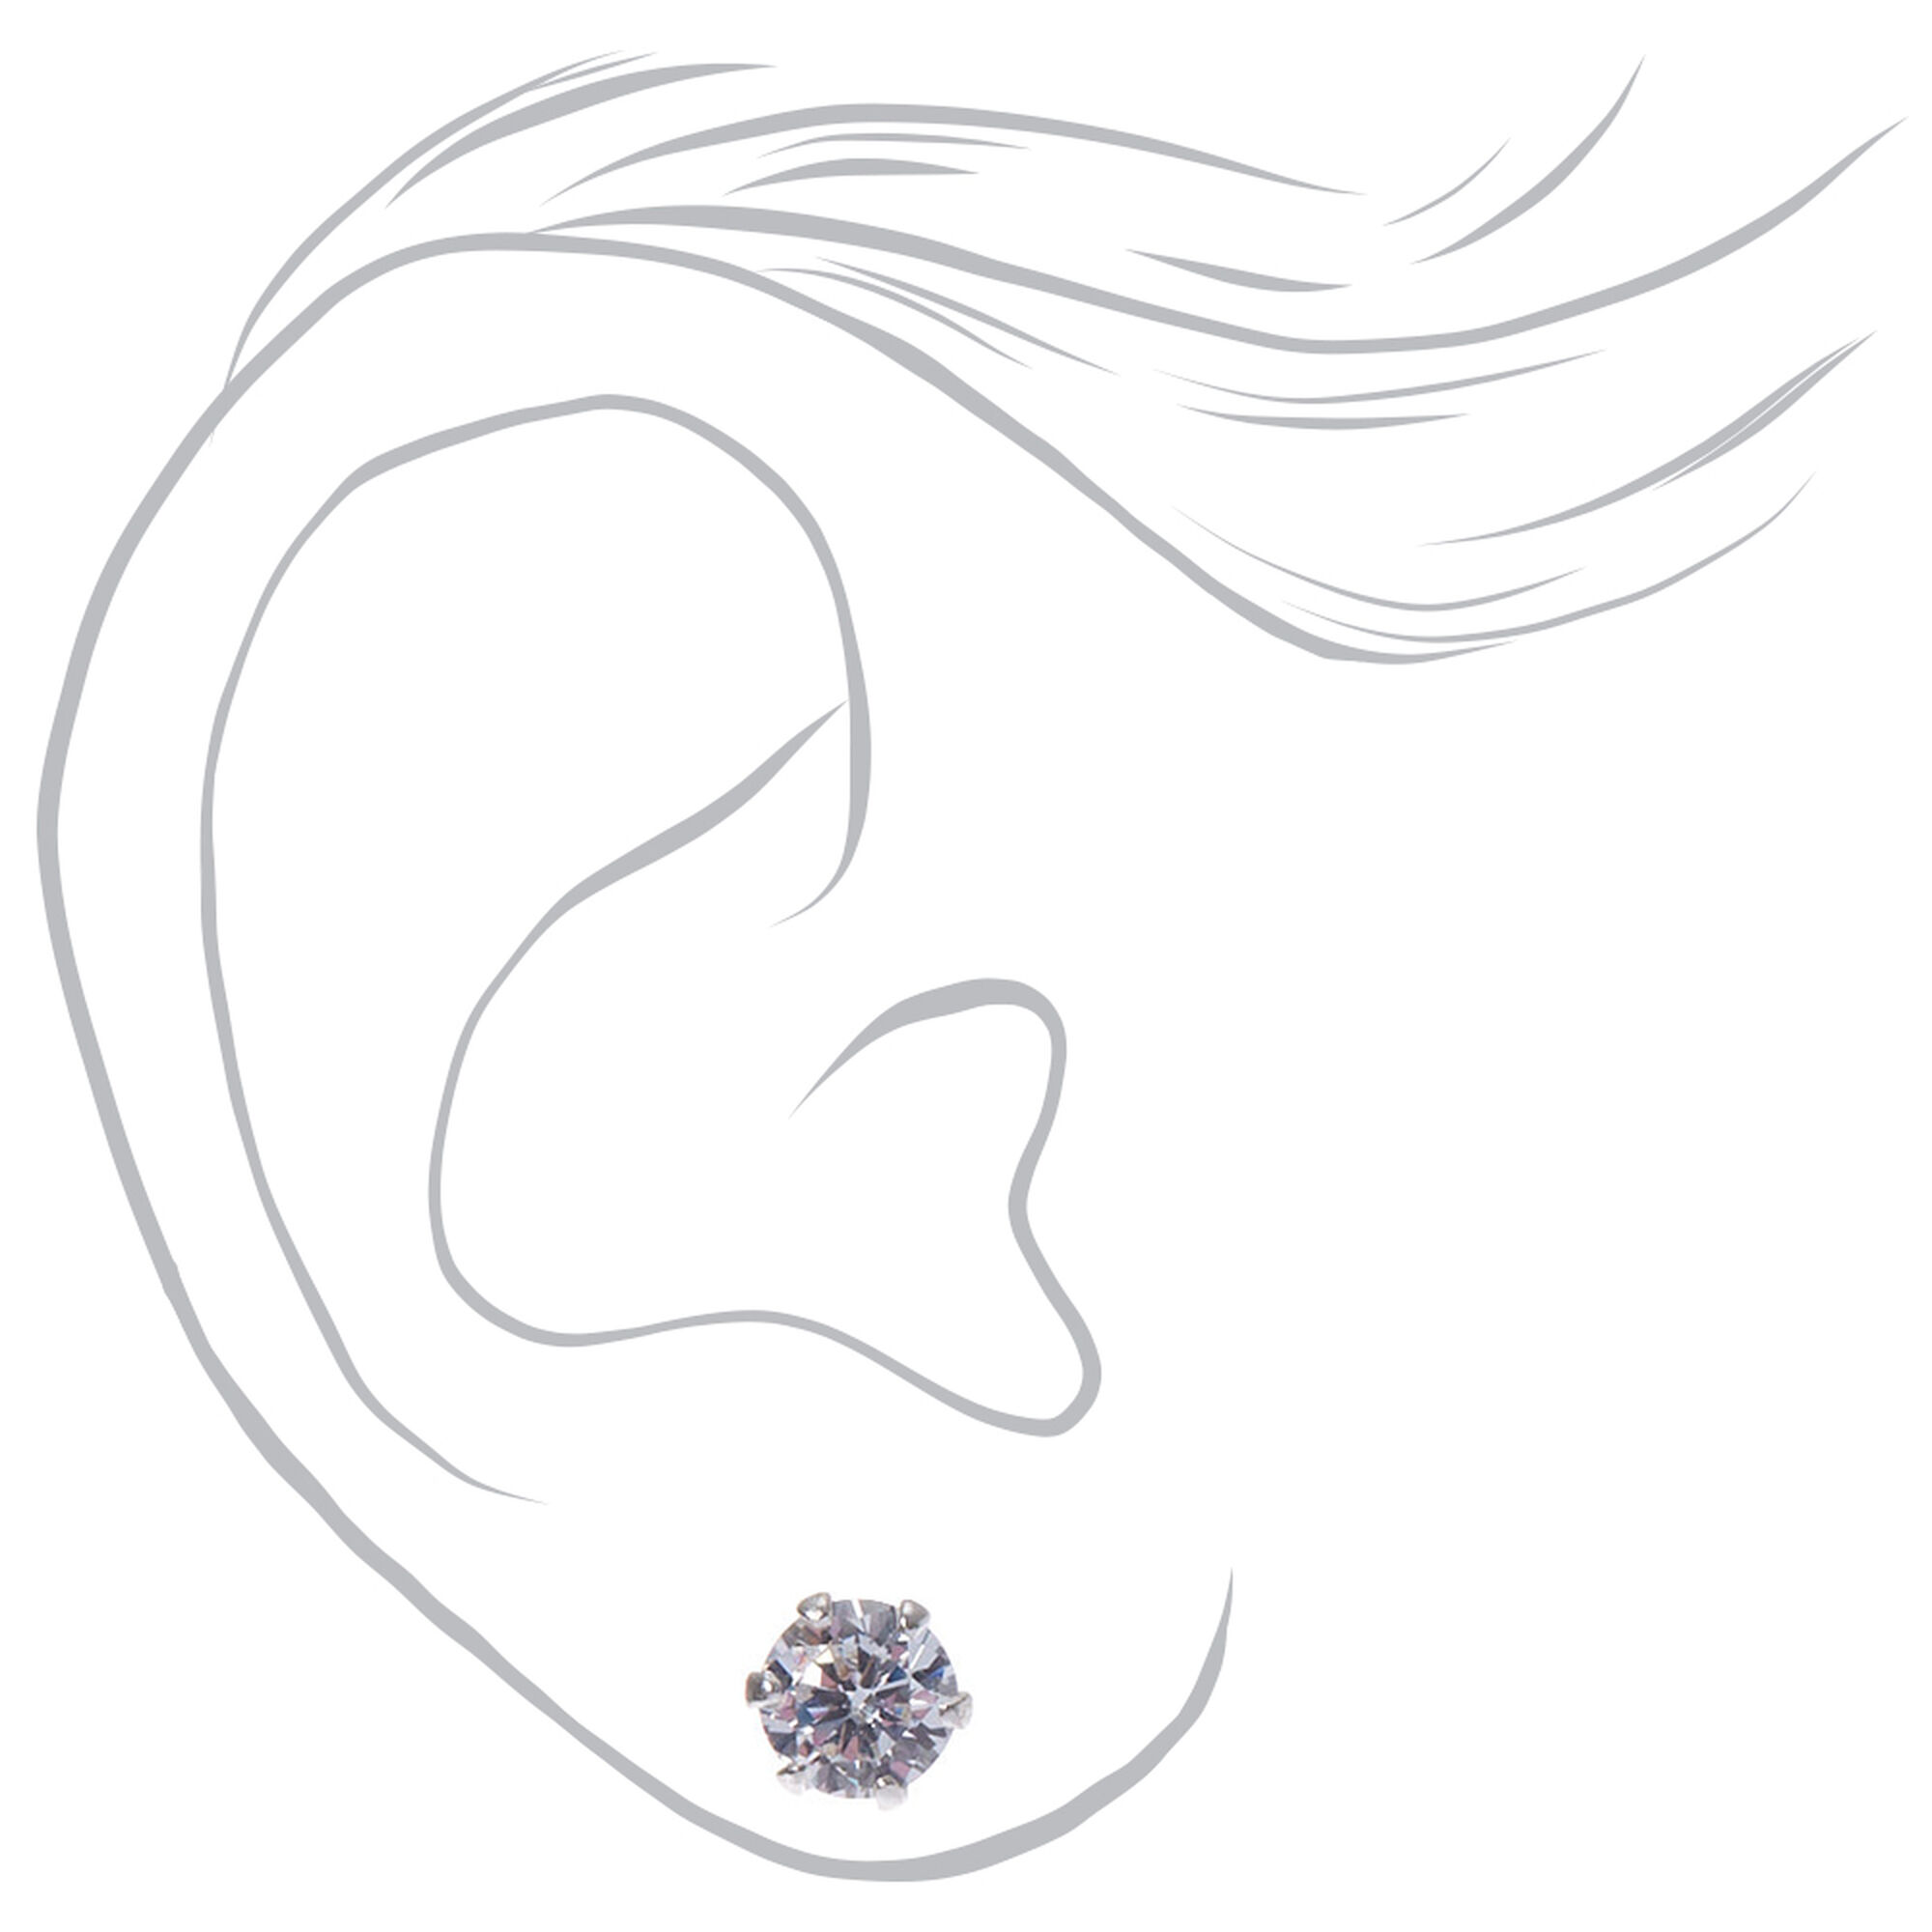 4498a05ac20b5f ... Sterling Silver Cubic Zirconia Graduated Round Stud Earrings - 3 Pack,